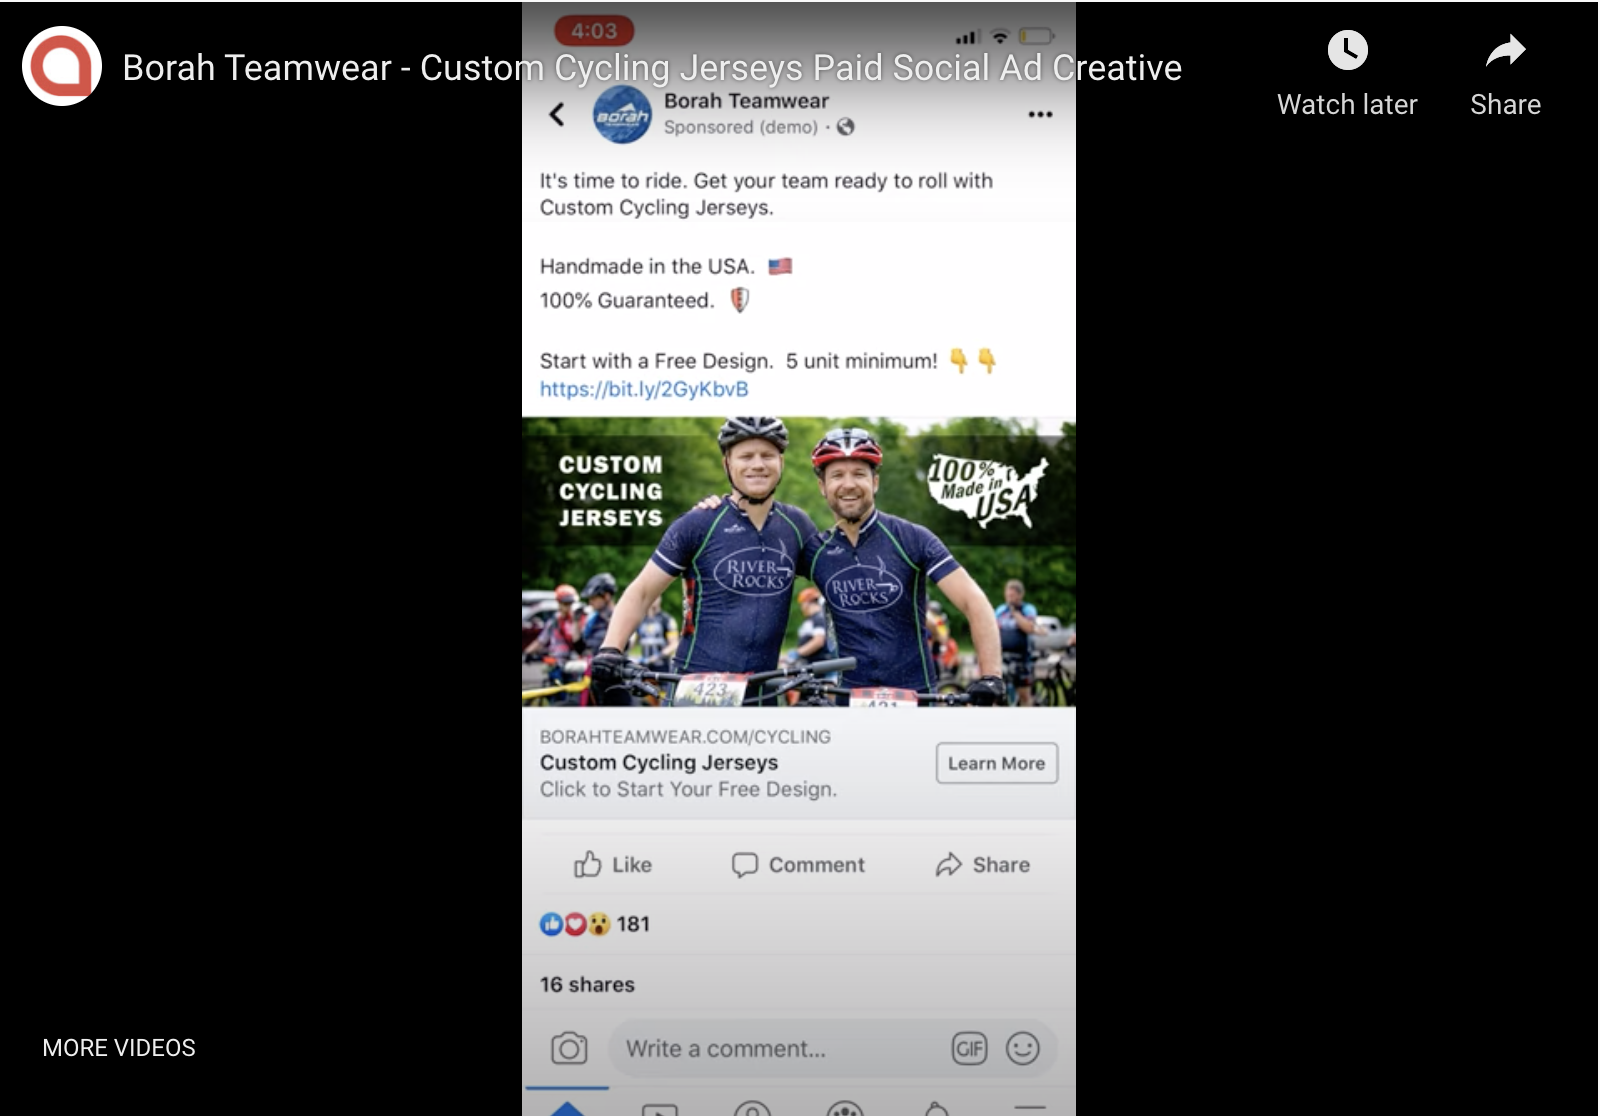 Borah Teamwear - Custom Cycling Jerseys Paid Social Ad Creative